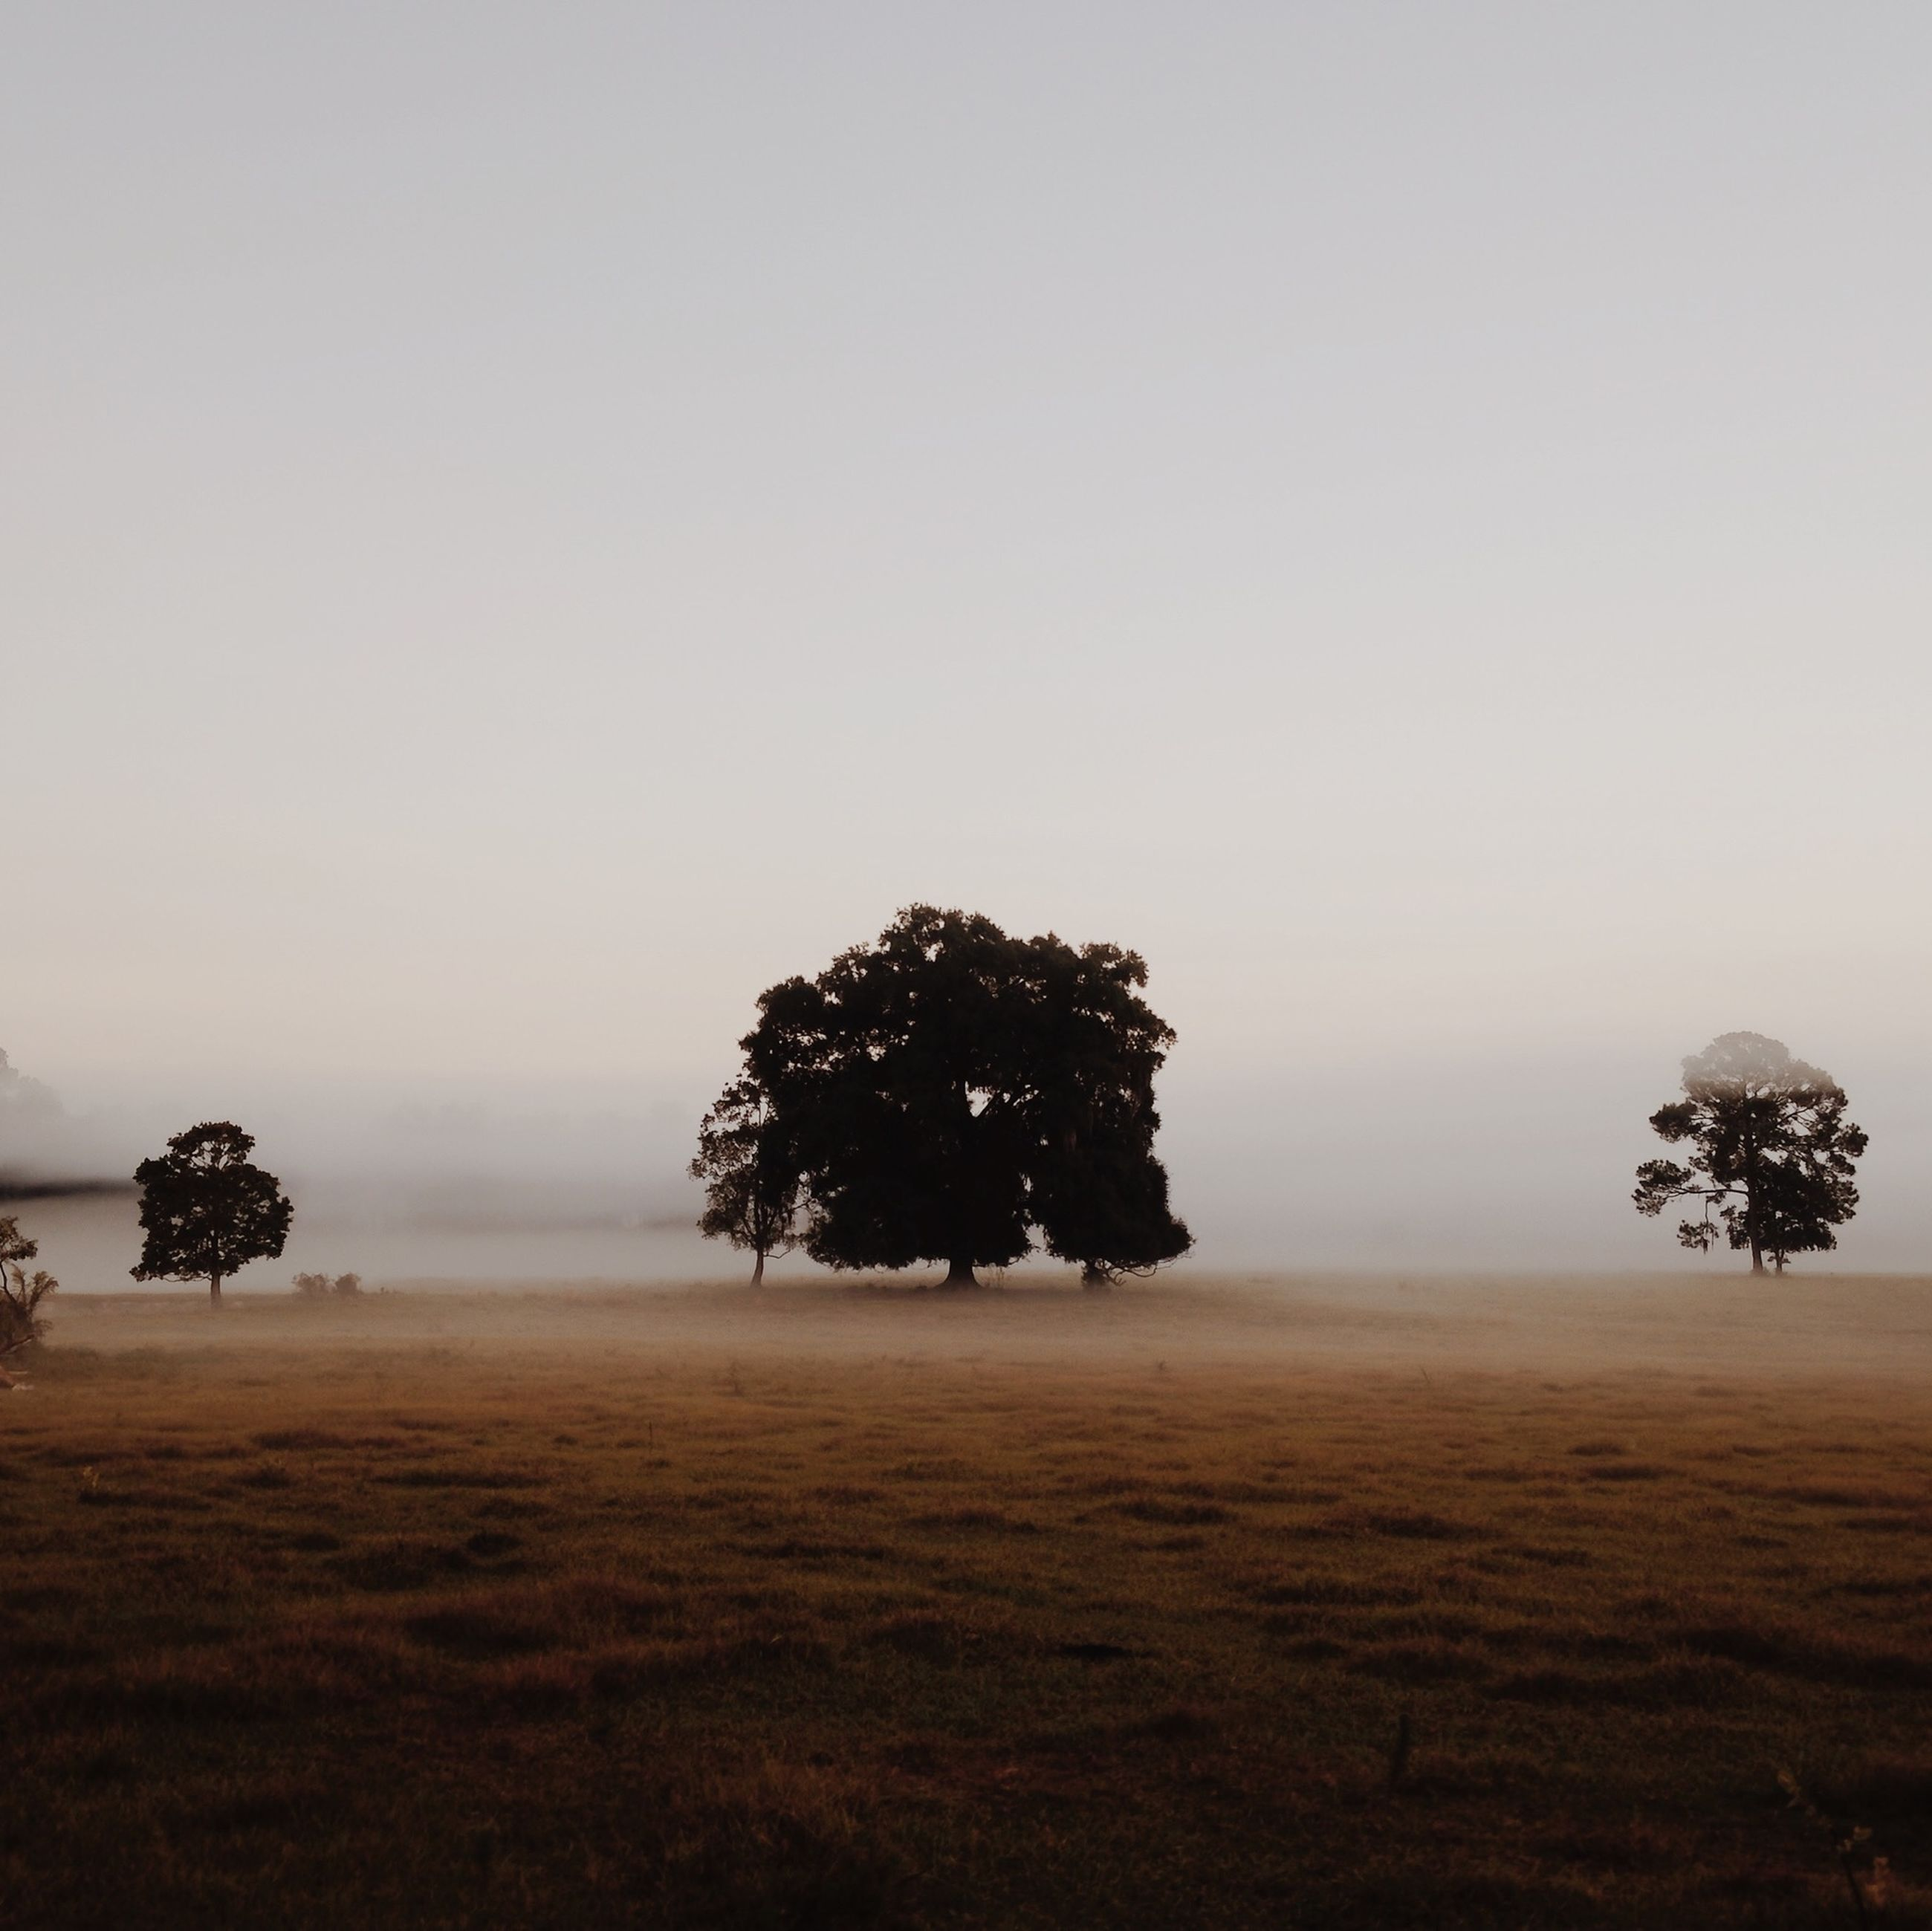 tree, tranquil scene, tranquility, copy space, clear sky, landscape, beauty in nature, field, scenics, nature, growth, weather, sky, foggy, non-urban scene, silhouette, idyllic, grass, outdoors